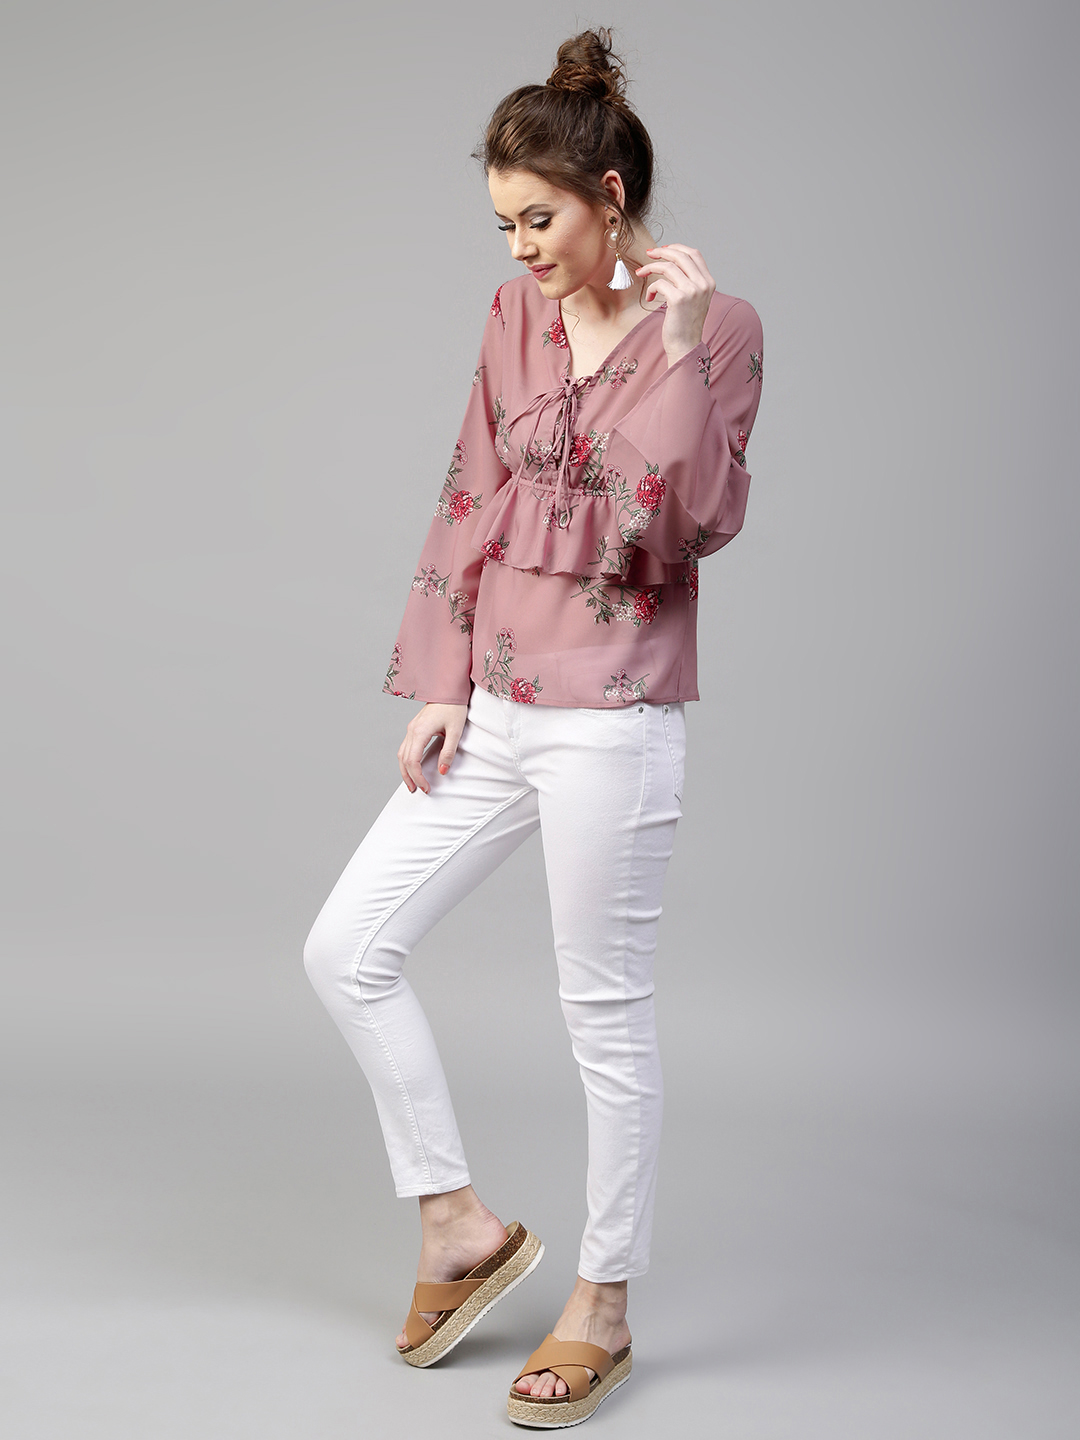 21-types-of-tops-Women-Mauve-Layered-Floral-Print-Top